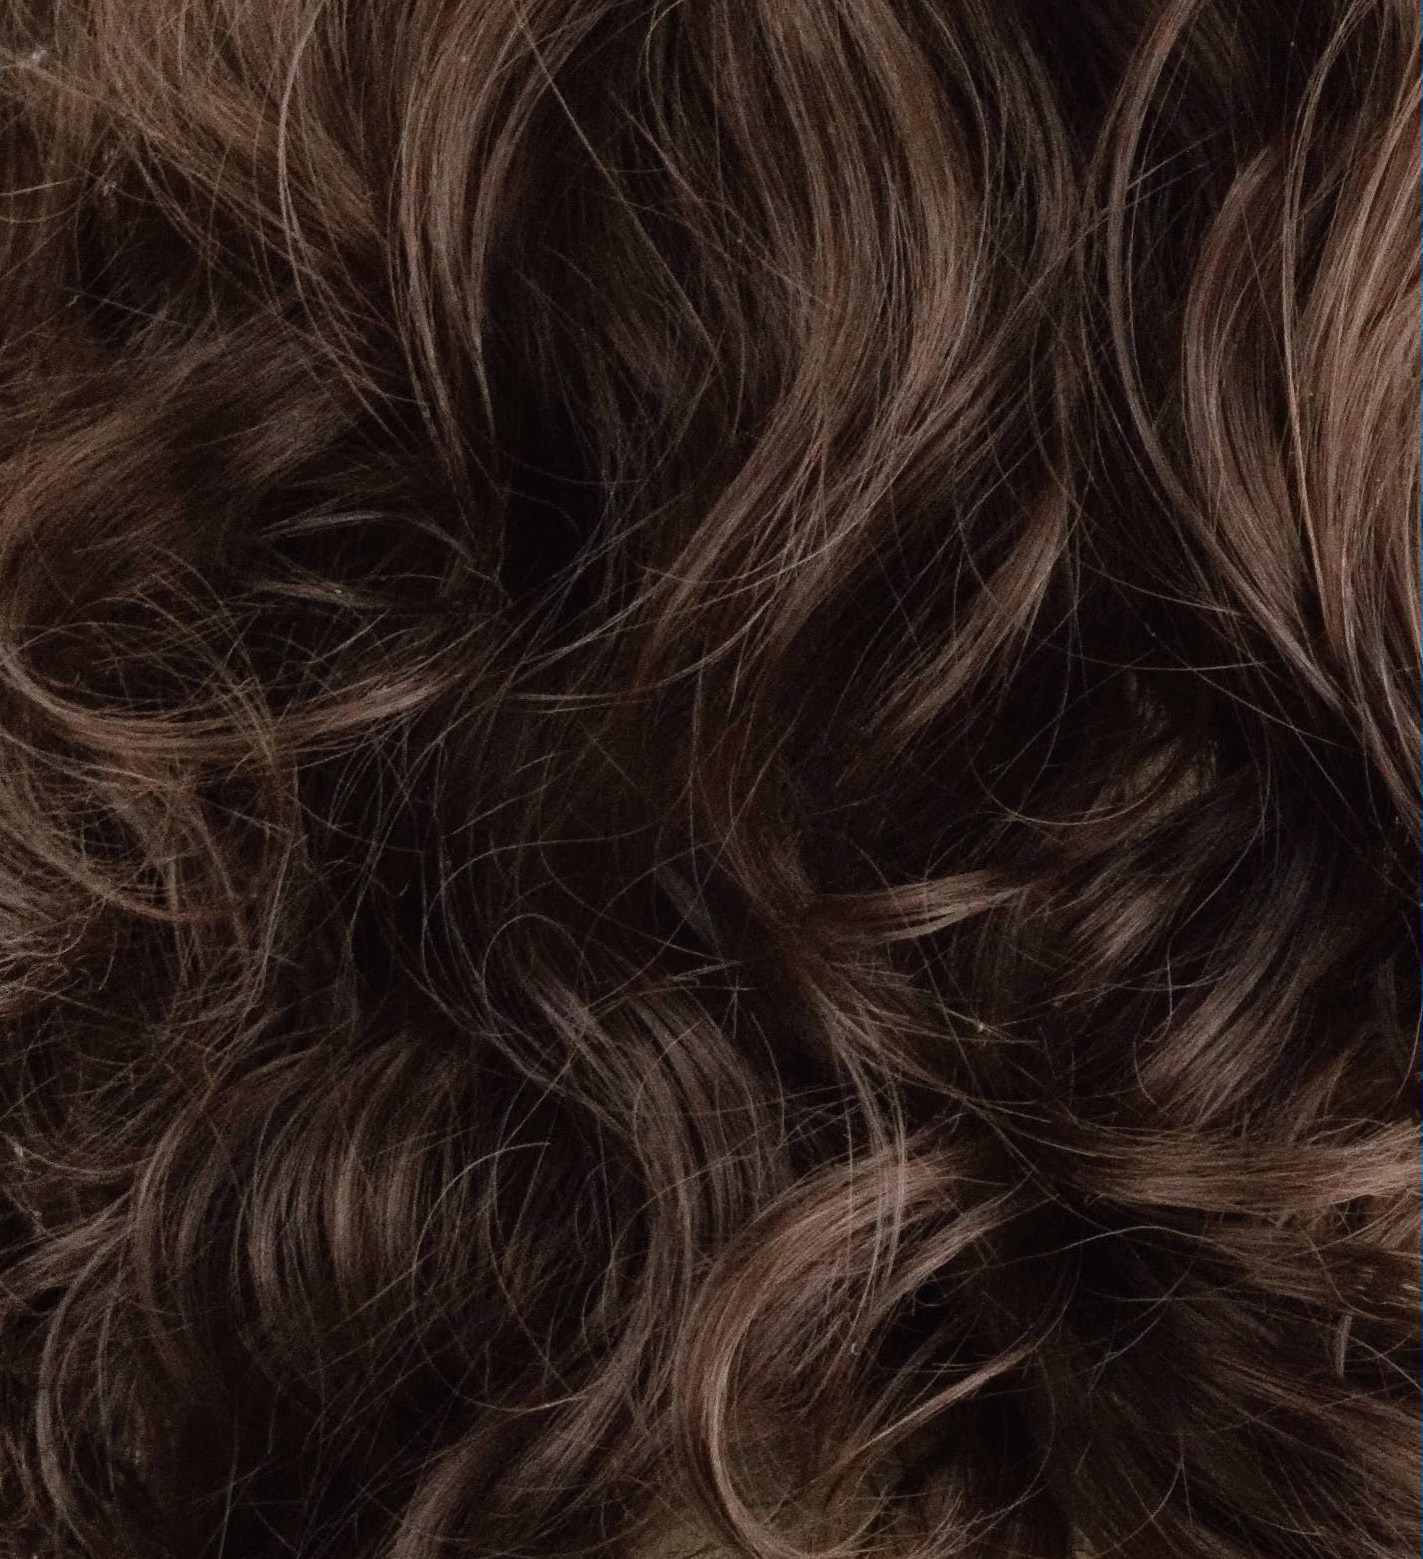 20 Quot Amp 23 Quot One Piece Clip In Hair Extensions Curly Wavy